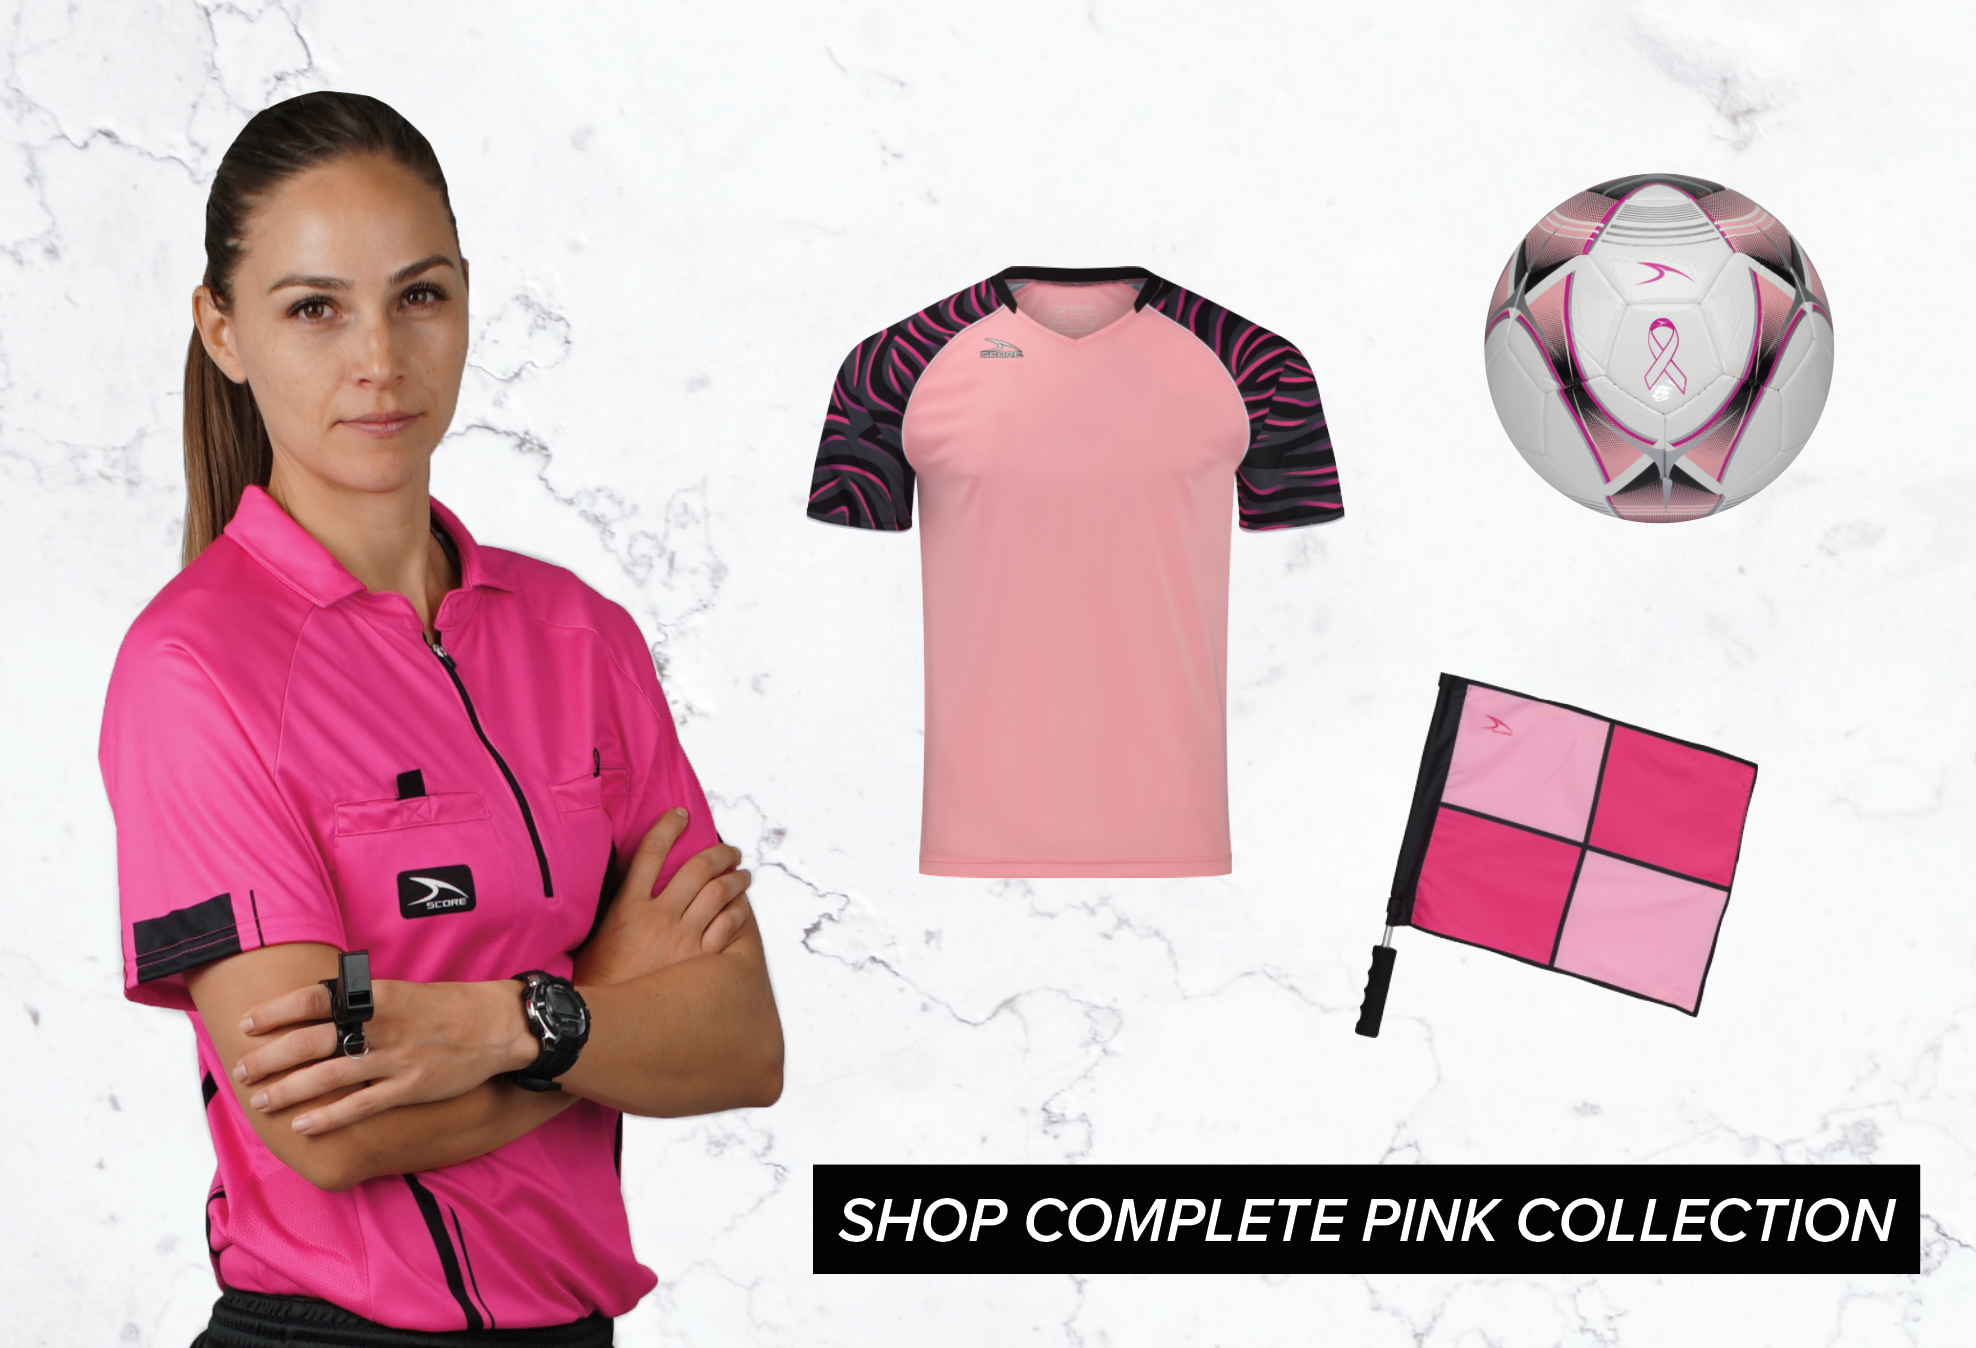 SCORE Sports - 5% of proceeds from the SCORE Pink Collection collection will be donated to KAB during the month of October!